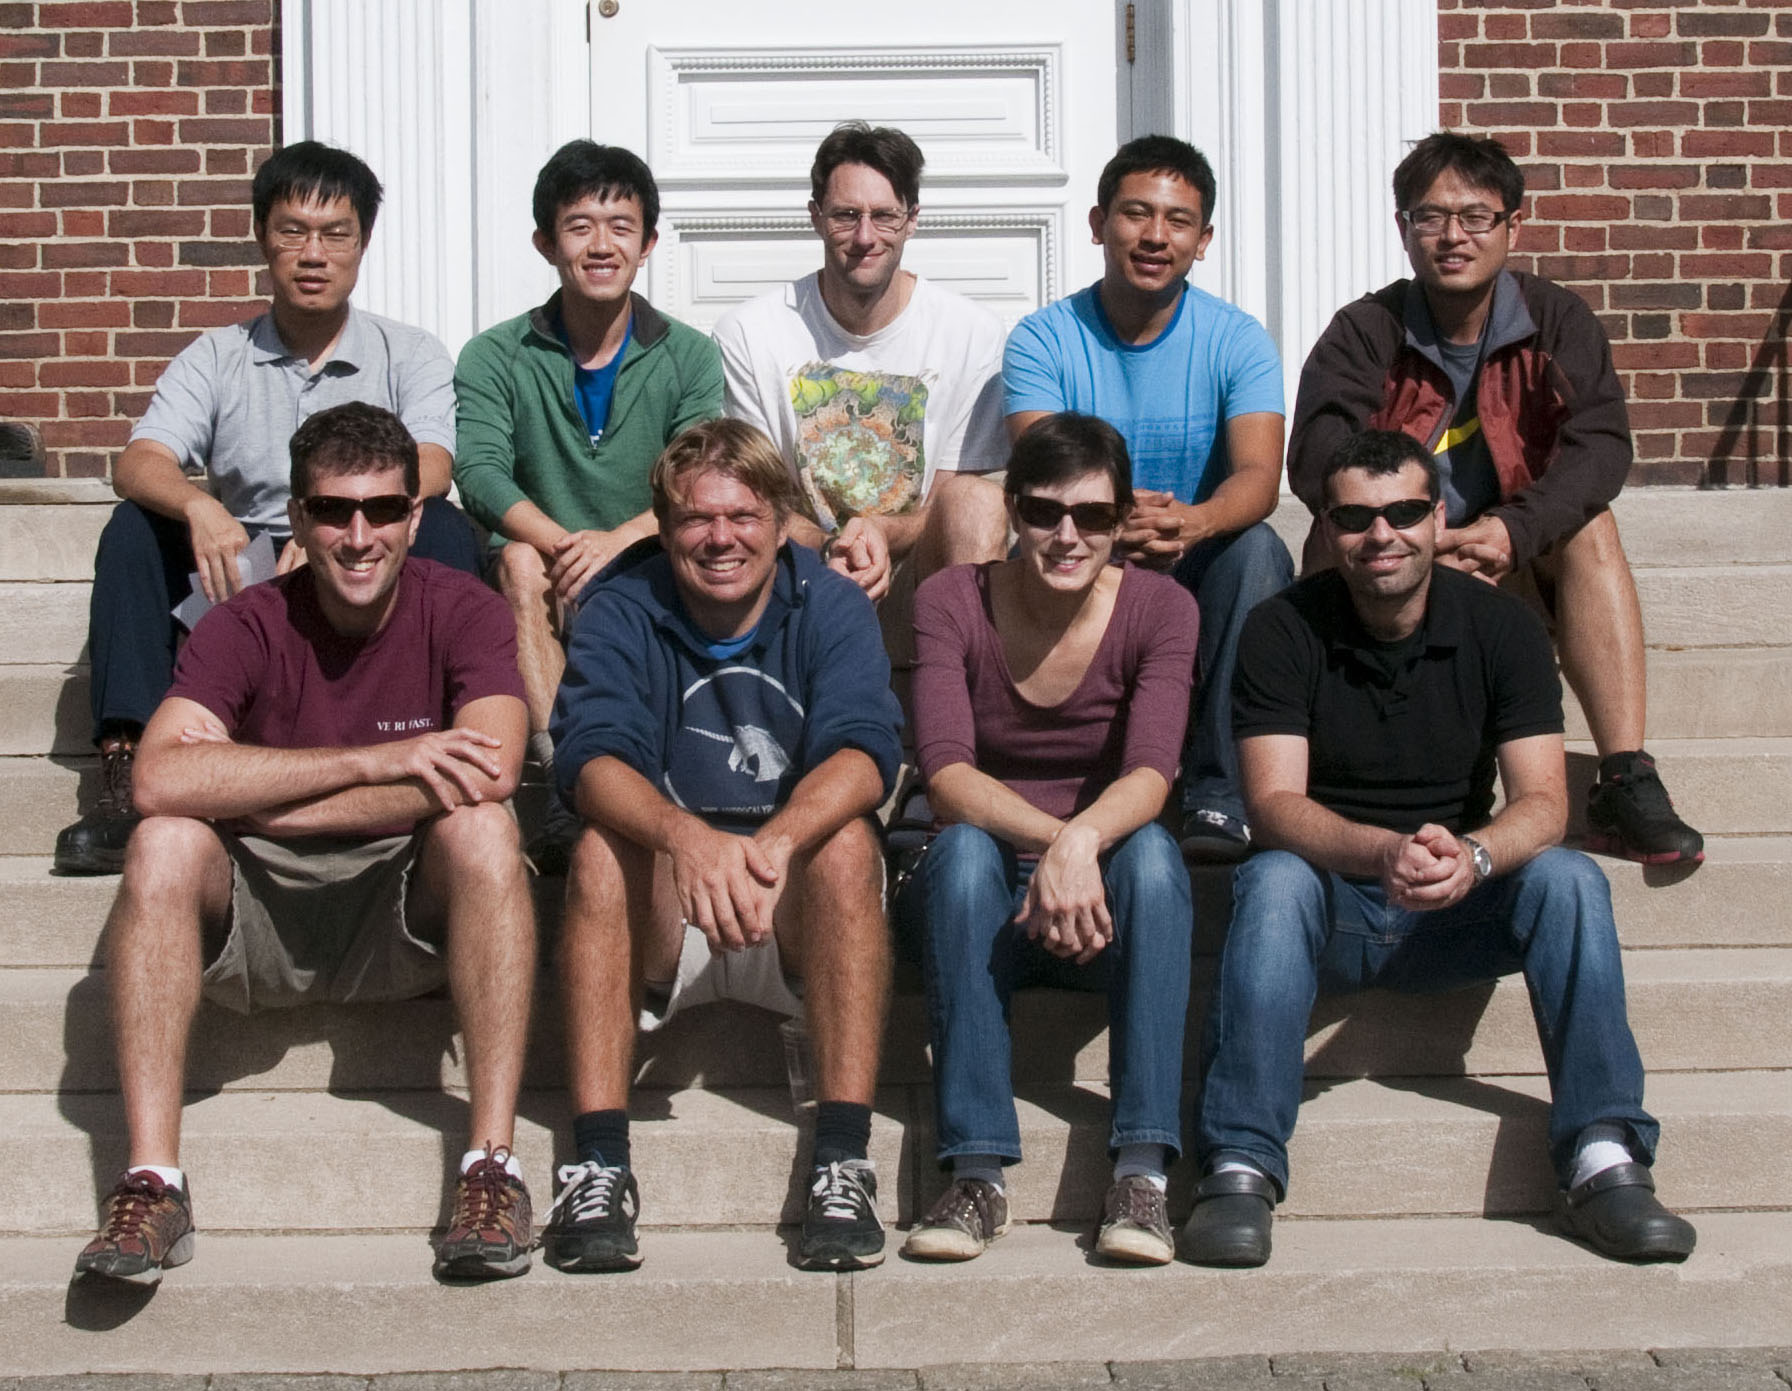 Left to right, top to bottom: Bo, Jue, Mike, Renan, Jacky, Ilan, Greg, Sarah, and Yoni.